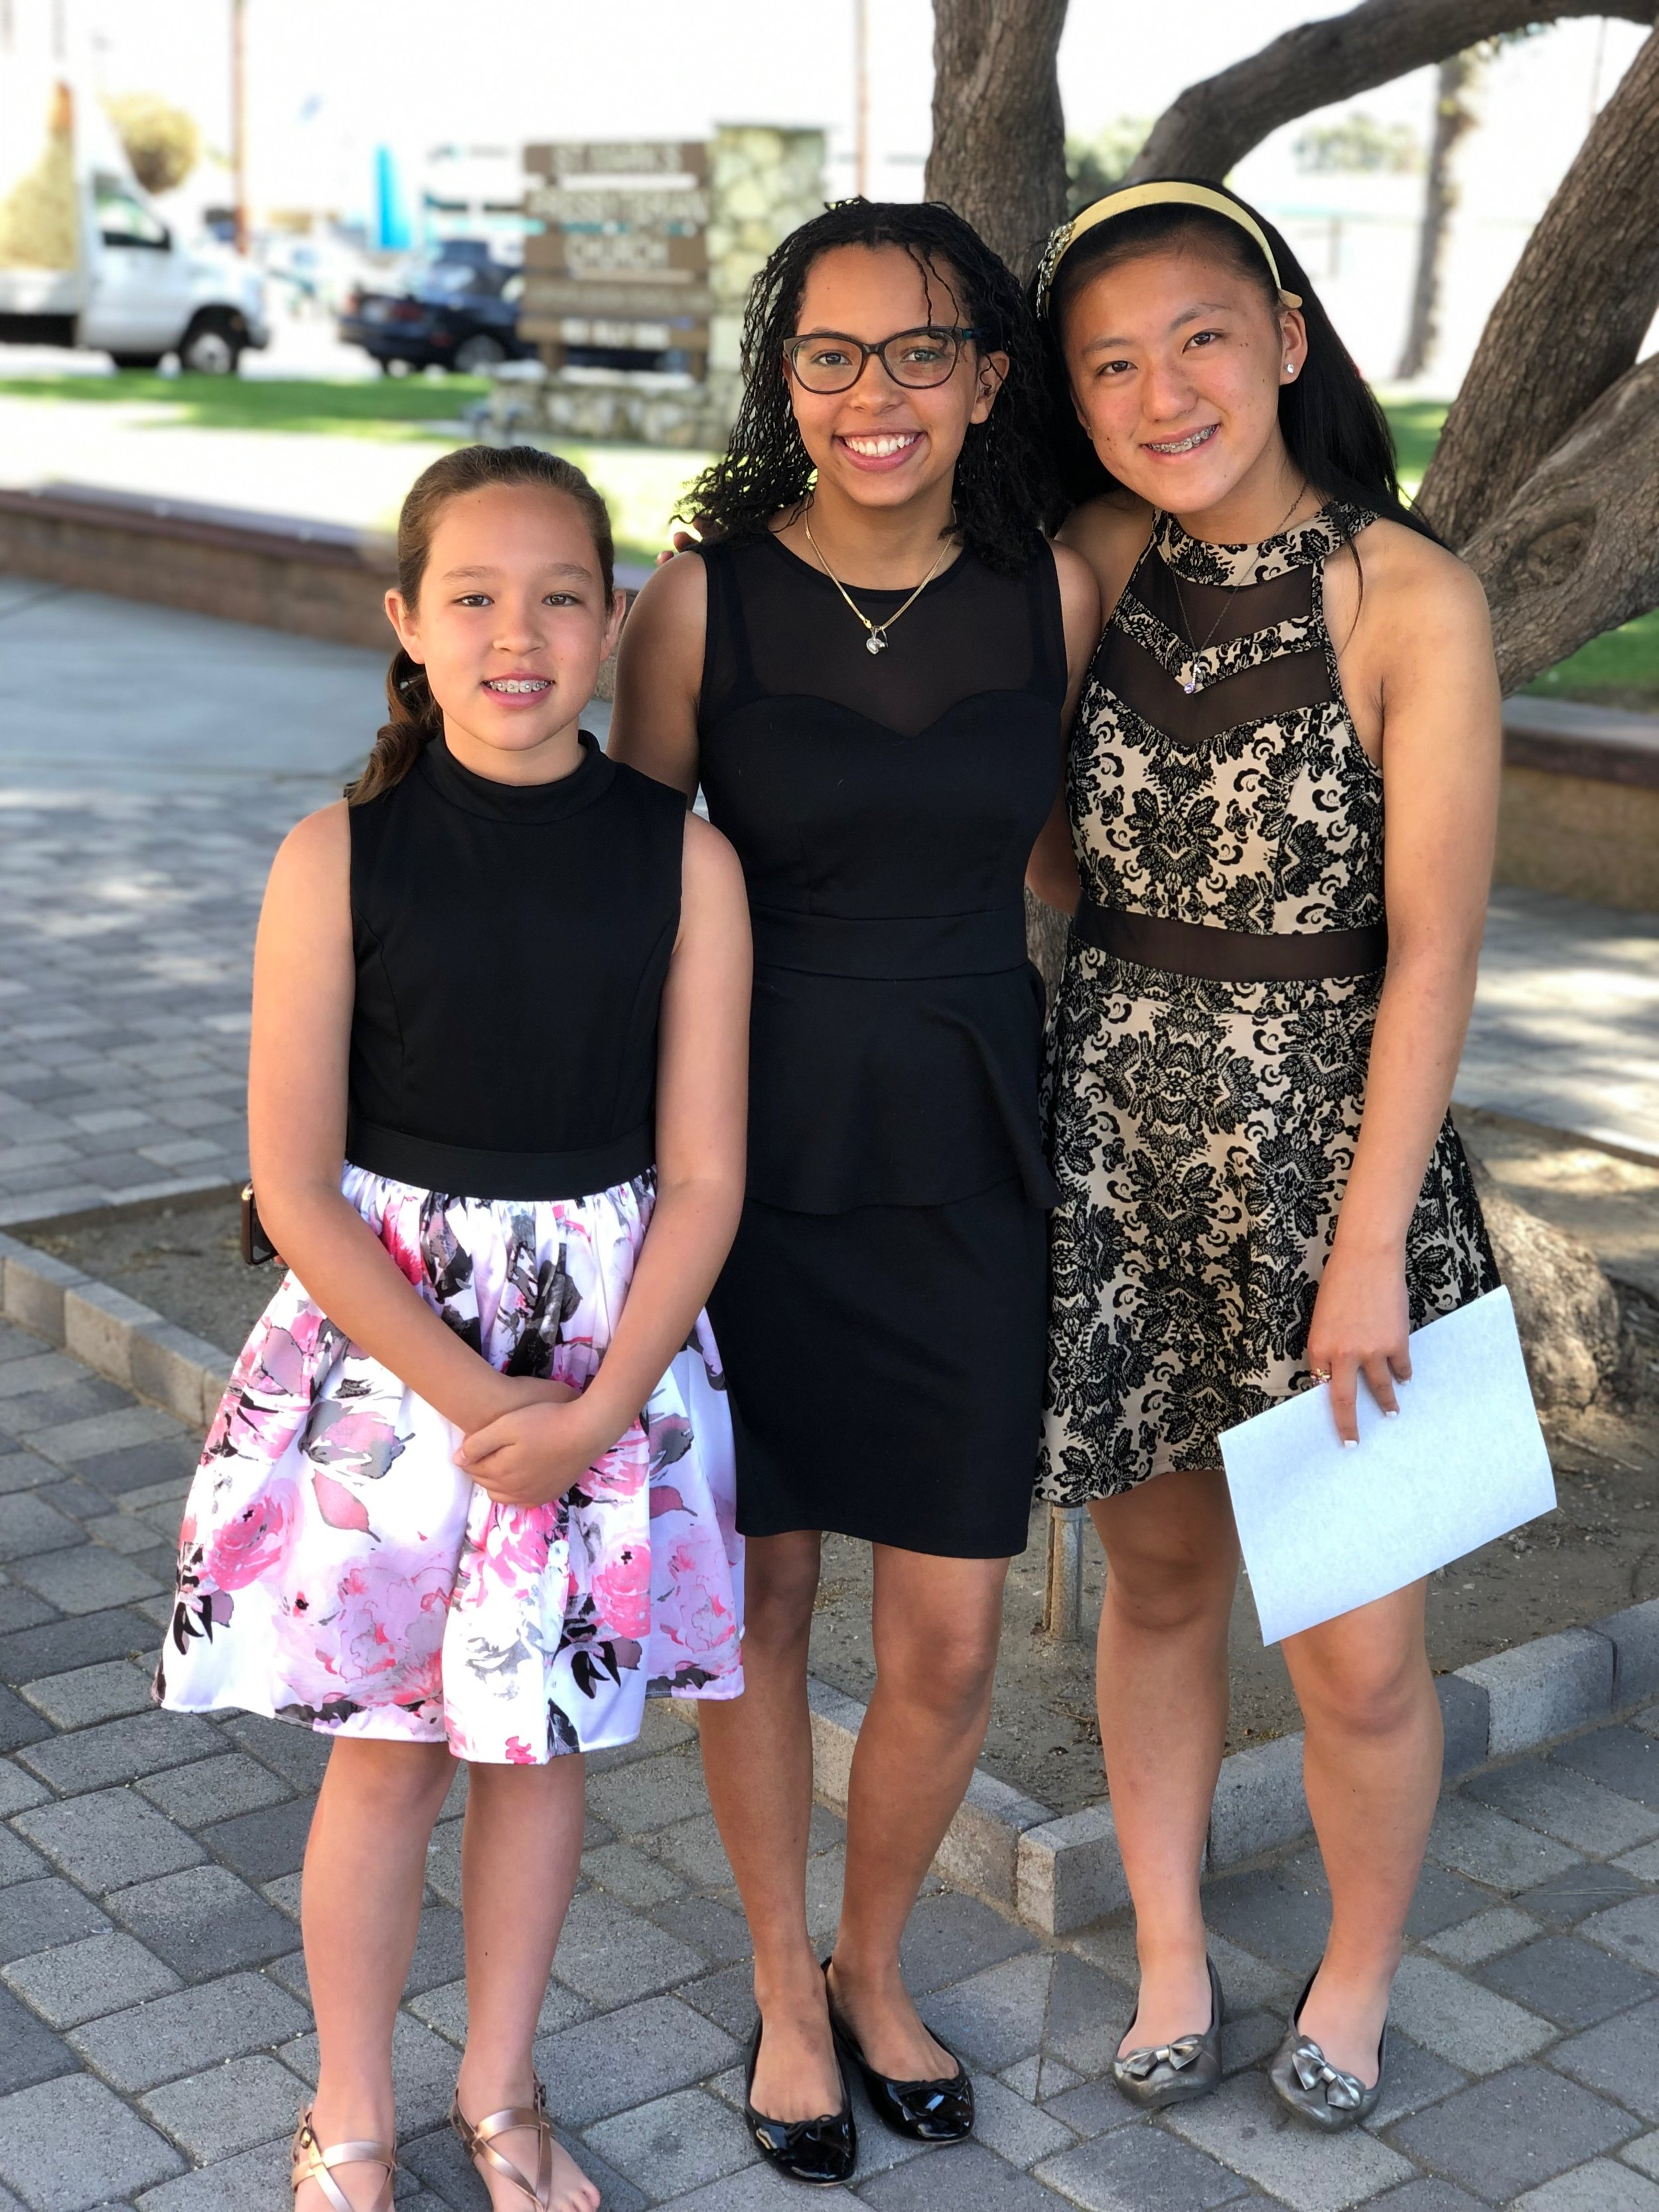 Bach festival 2019 - Congratulations to Mikaela D'Adamo, South Bay Branch winner, Idah Corfitzen, Honorable Mention winner, and Stephanie Wong, Honorable Mention Winner